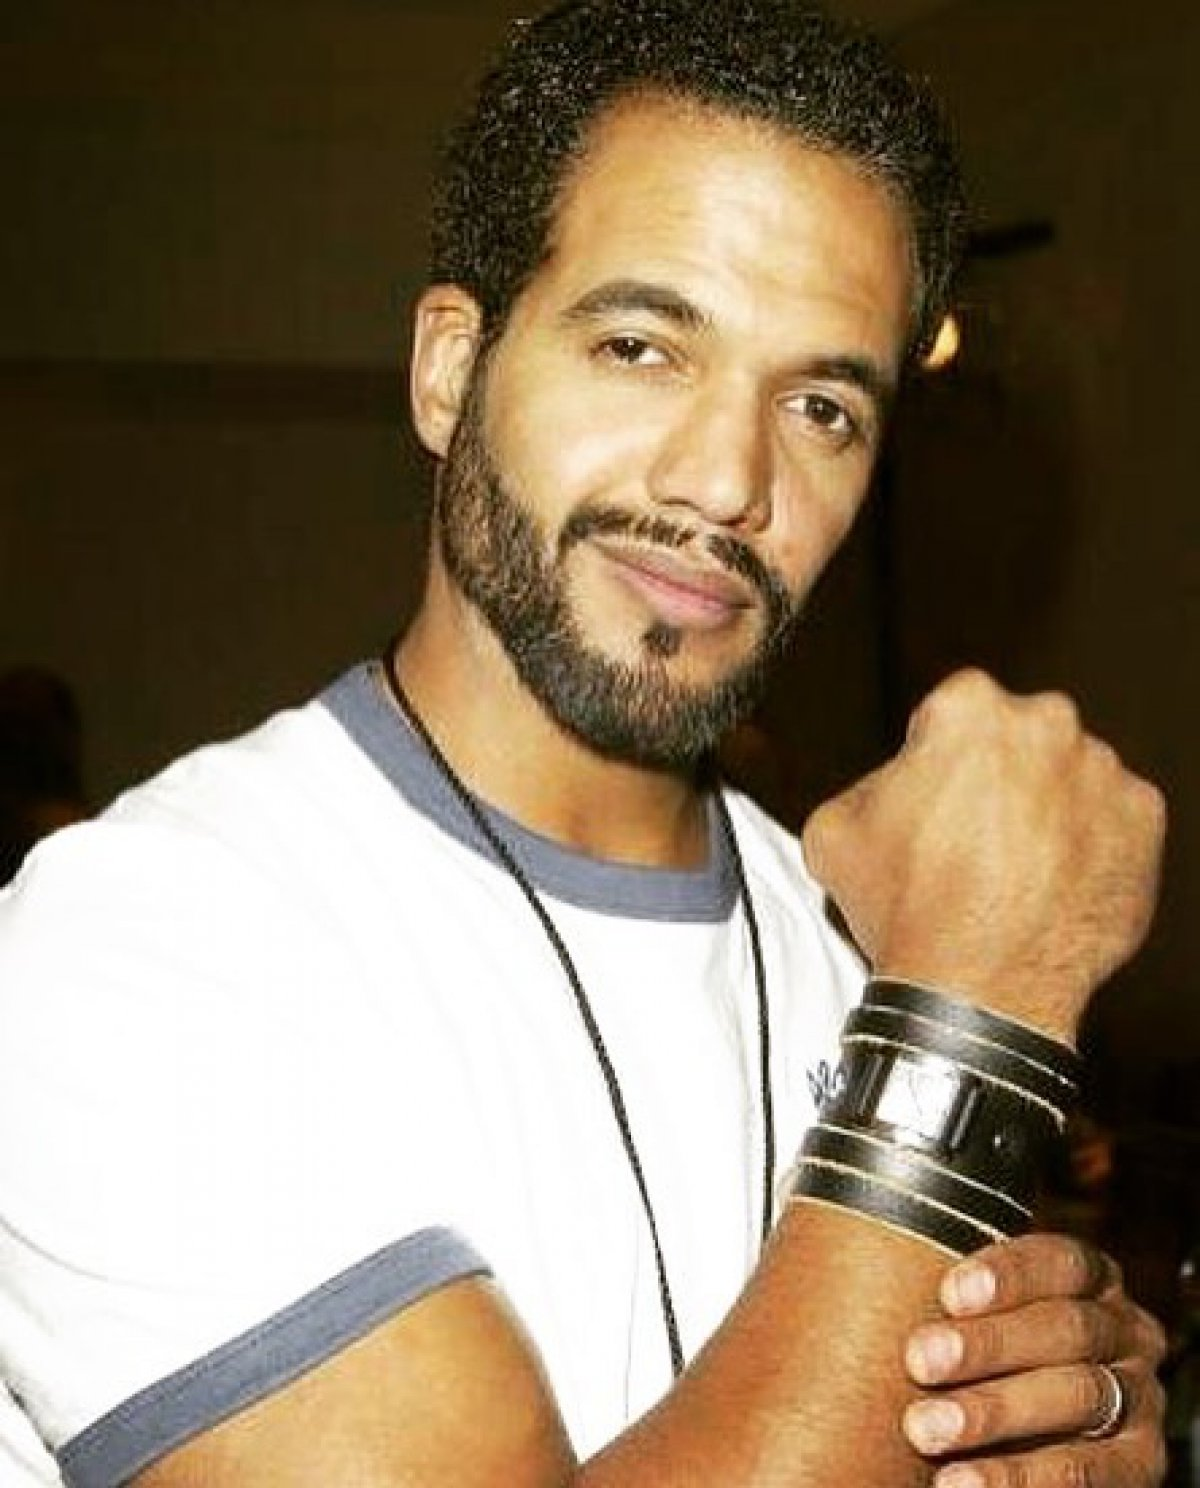 Kristoff St John took to social media to be one of the if not the first actors to welcome Josh Griffith back as the shows head writer